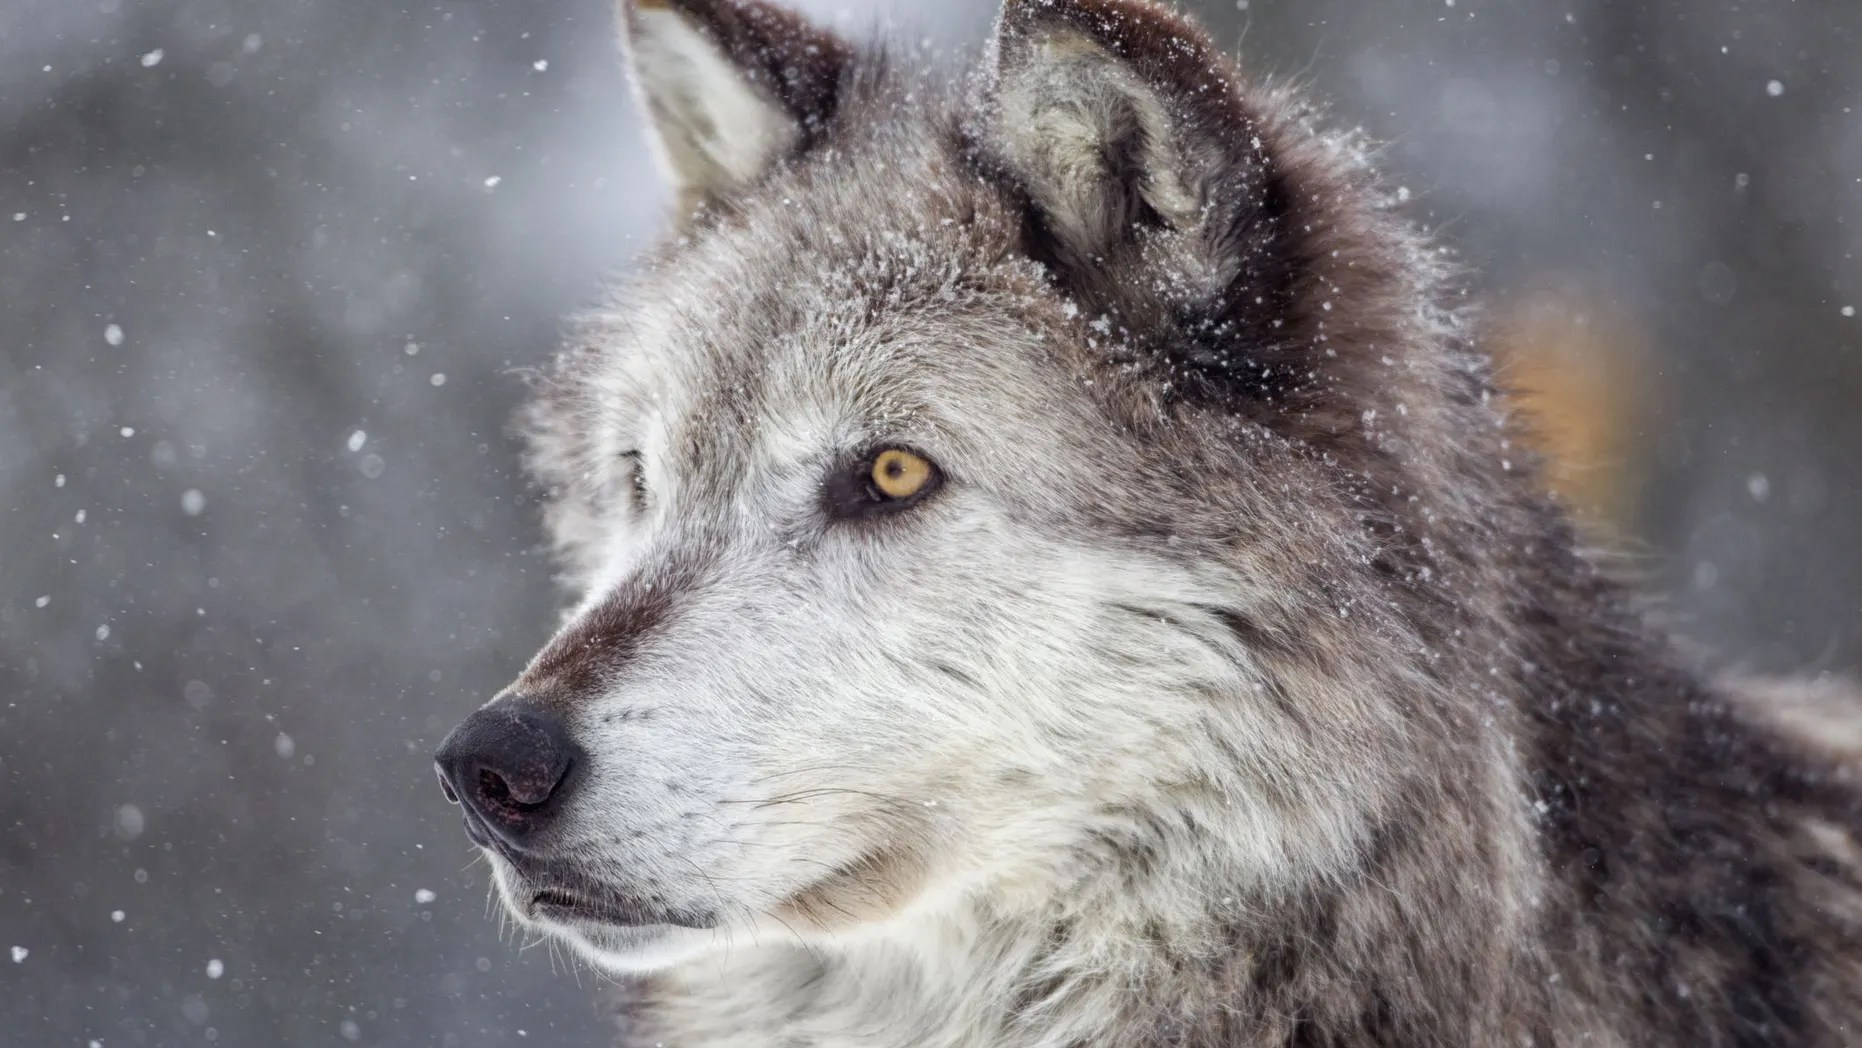 POLL: Should the Biden Administration reinstate the gray wolf on the List of Endangered and Threatened Wildlife?